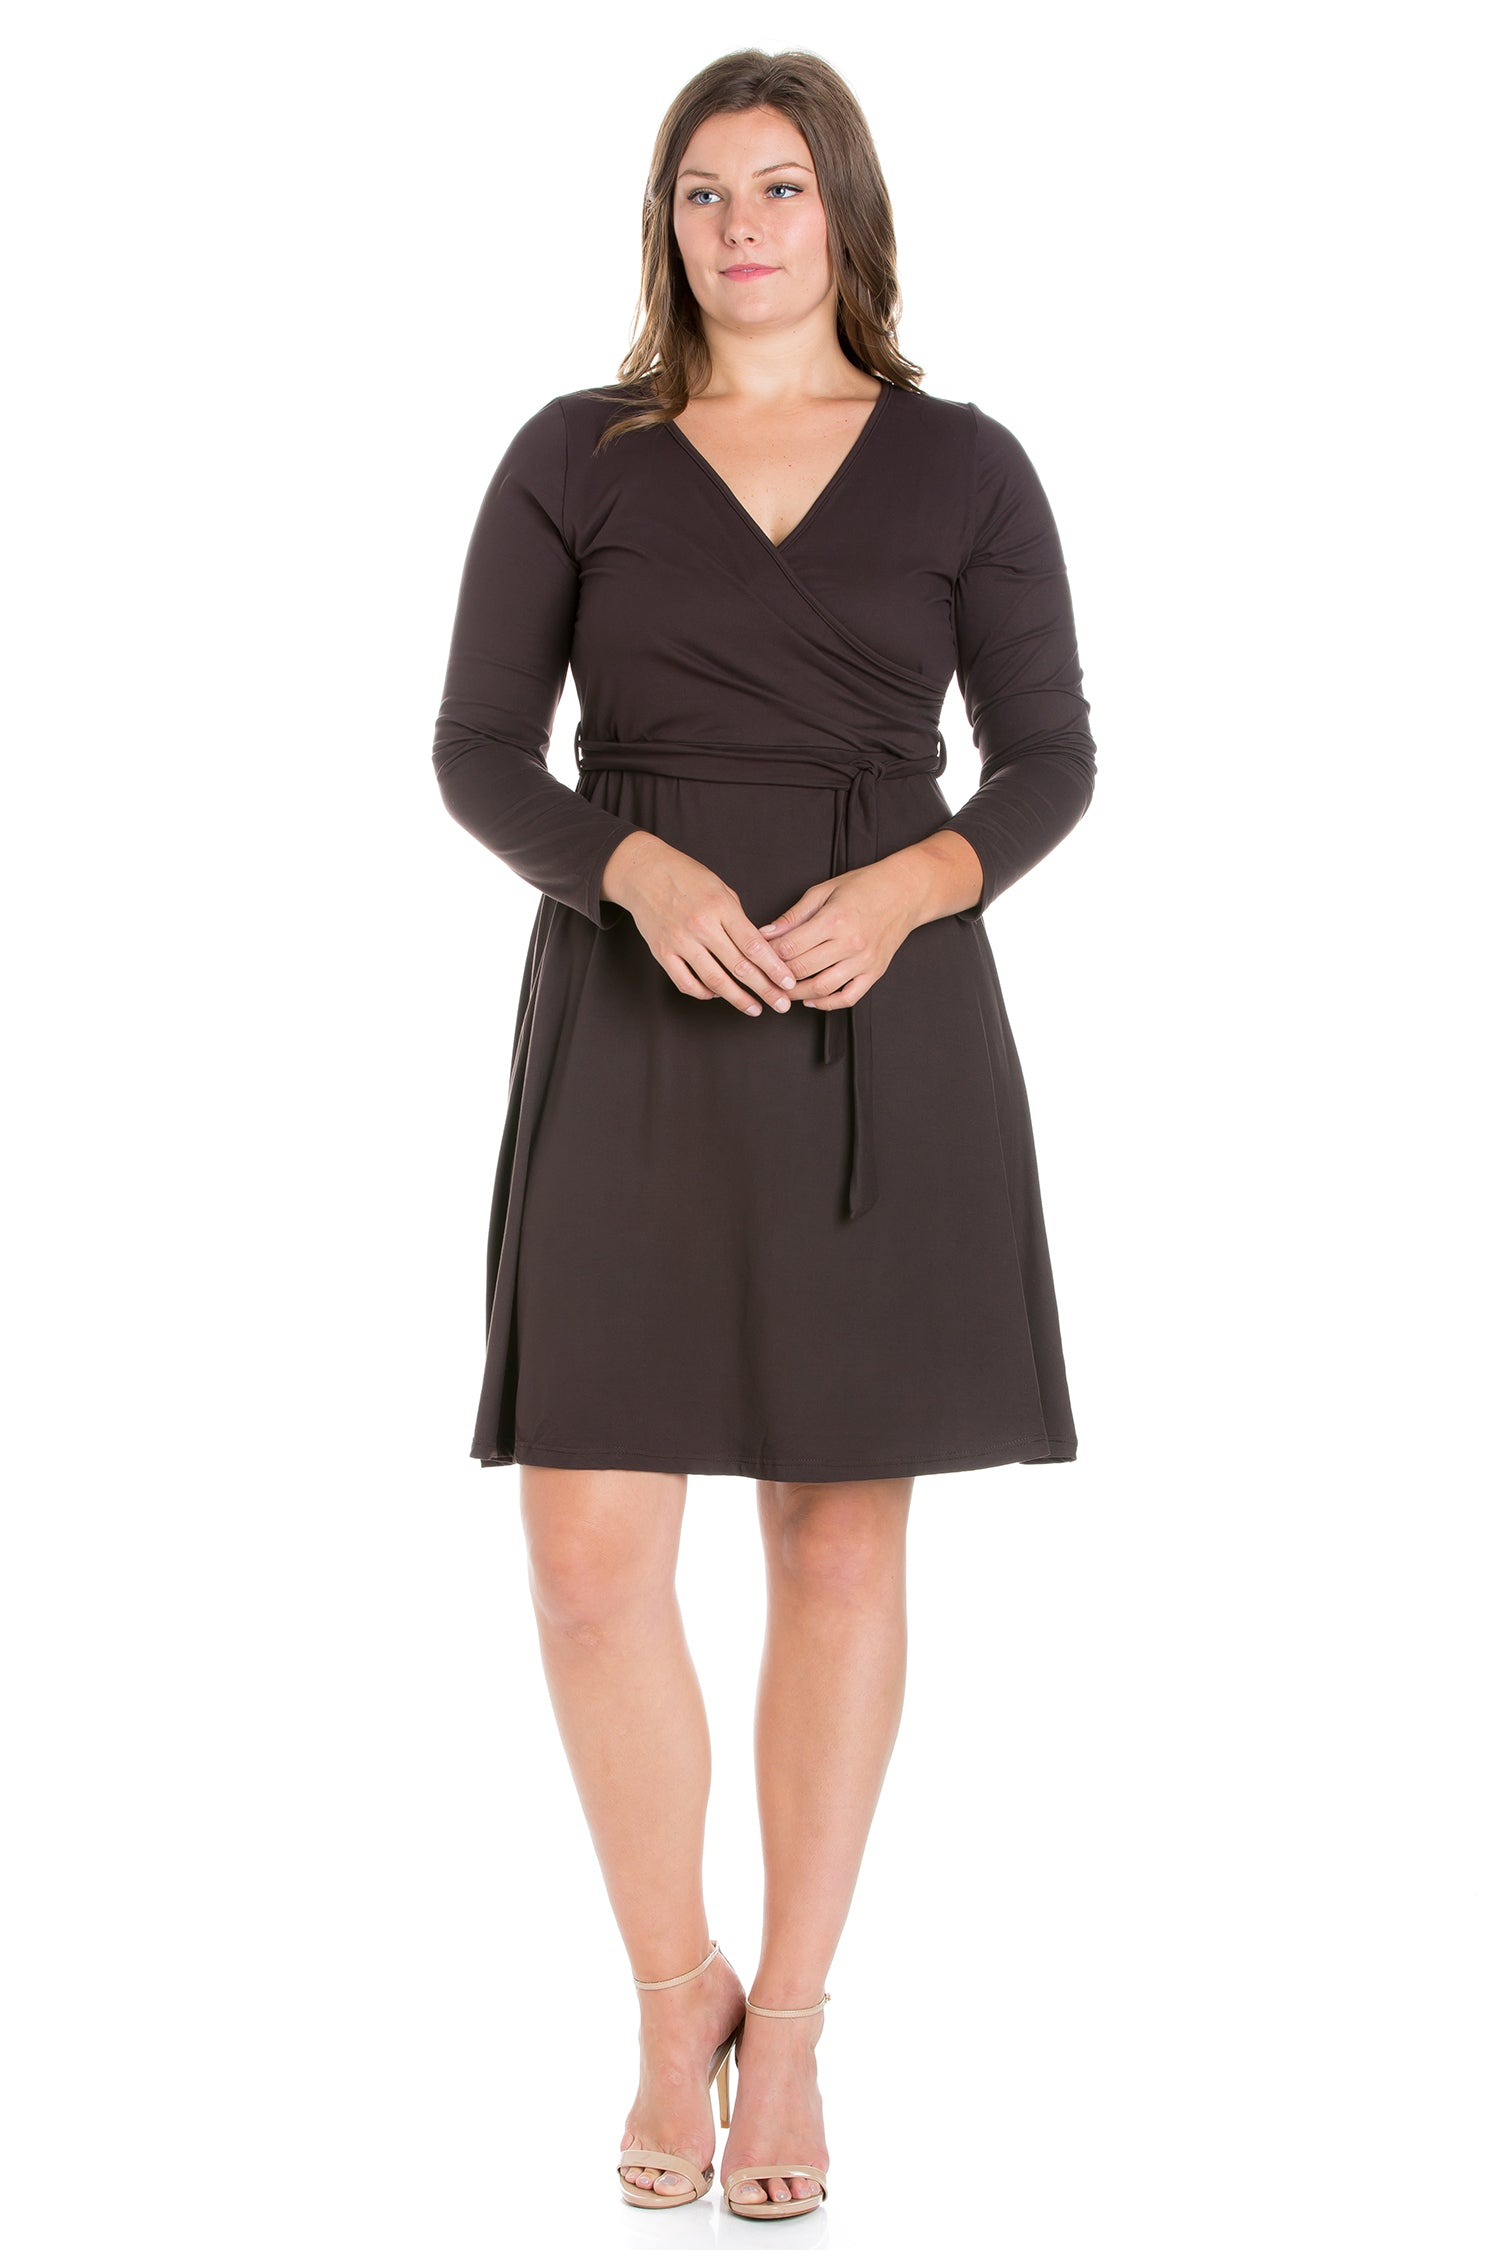 24seven Comfort Apparel Chic V-Neck Long Sleeve Belted Plus Size Dress-DRESSES-24Seven Comfort Apparel-BROWN-1X-24/7 Comfort Apparel